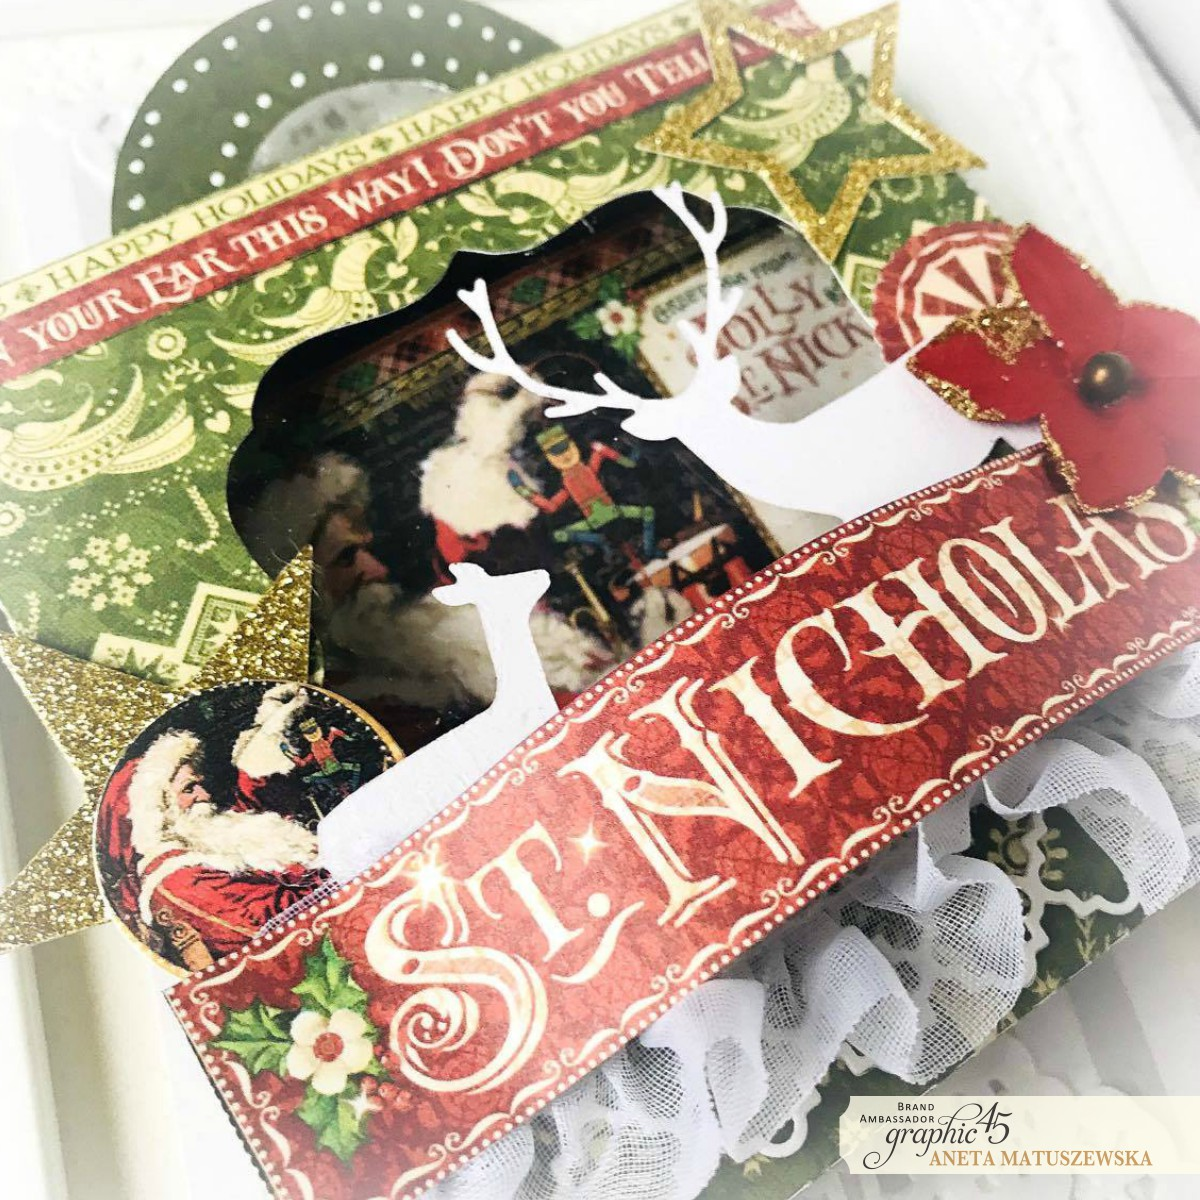 Christmas gift box for Graphic 45, by Aneta Matuszewska, photo 4.jpg